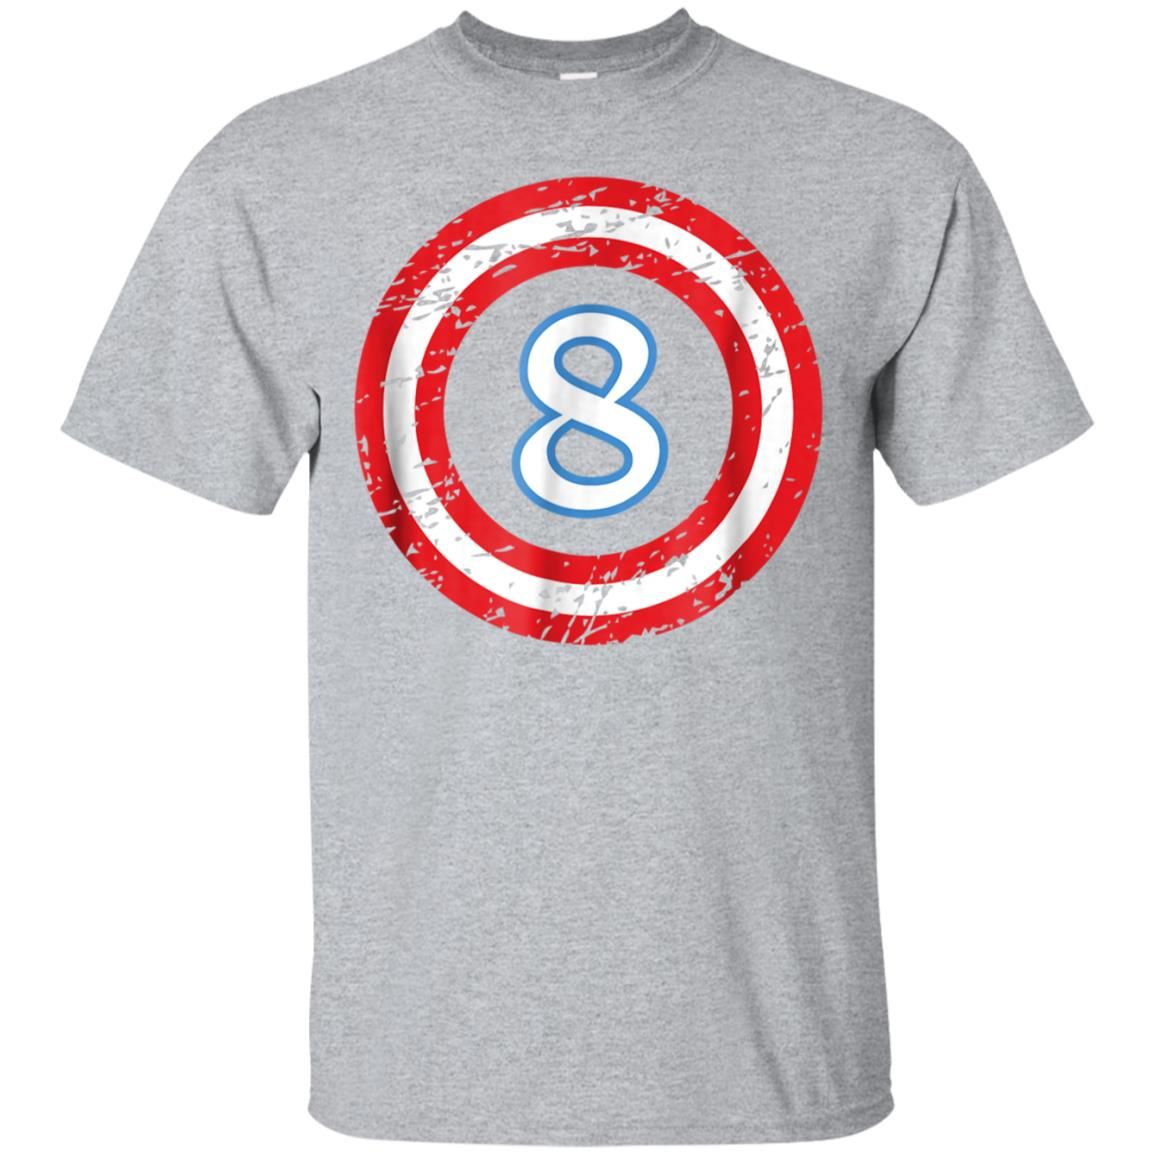 Captain 8 Year Old Birthday Boy T-Shirt (8th Birthday Gift) 99promocode